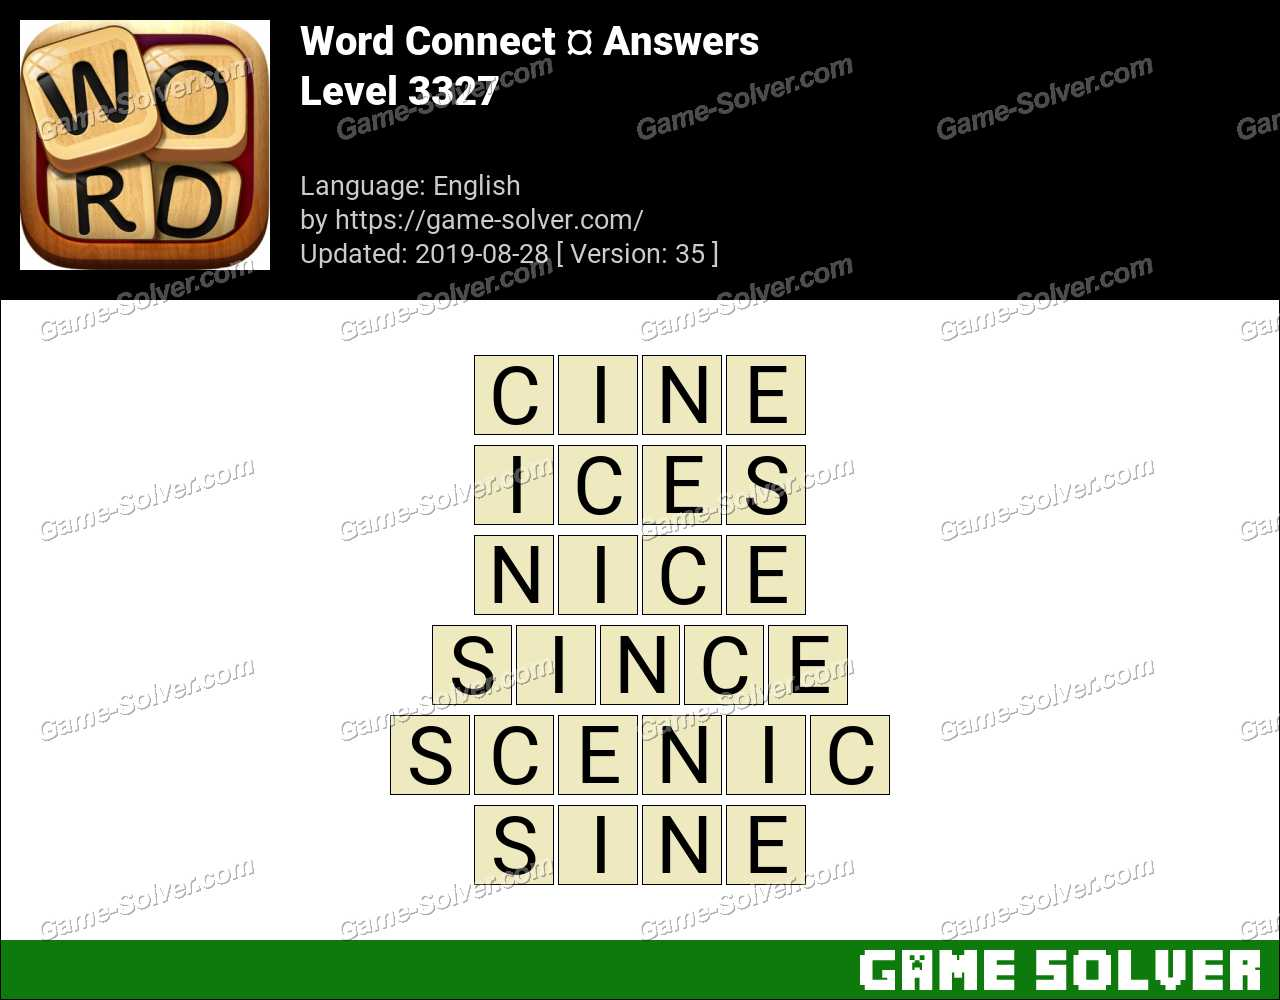 Word Connect Level 3327 Answers